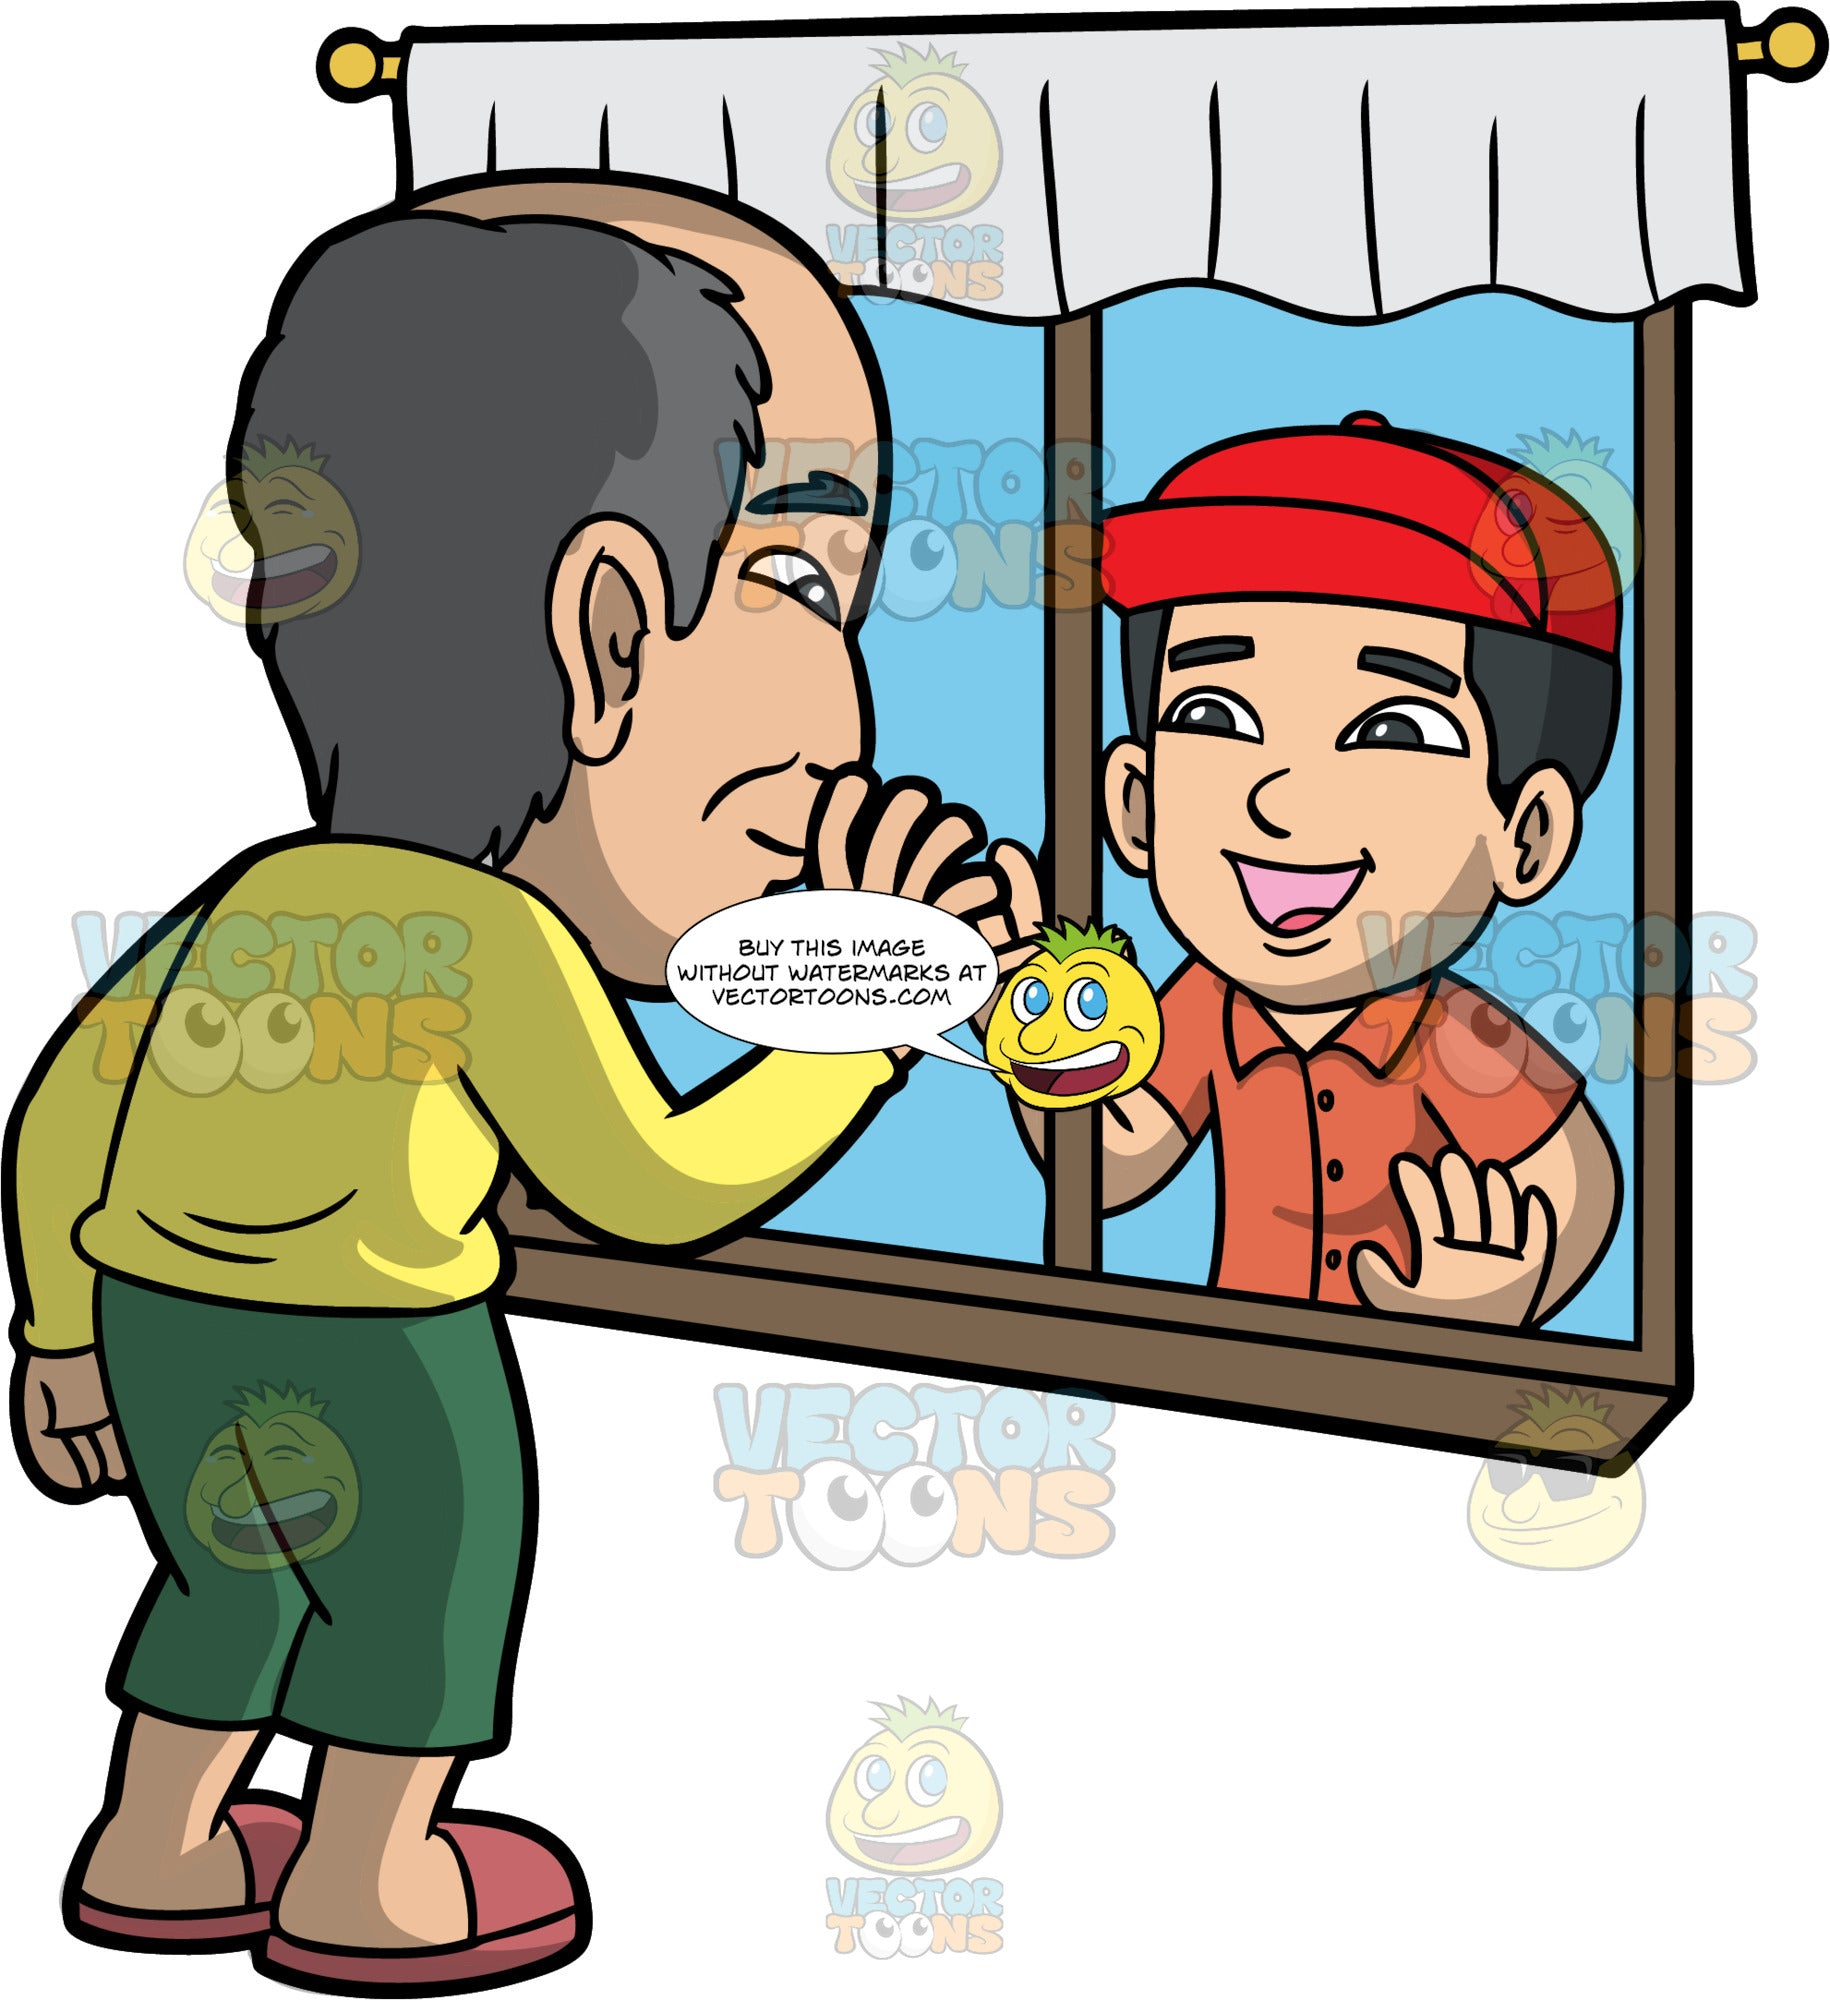 A Young Boy Visiting His Grandfather Through A Window. An elderly Asian man wearing green pant, and a yellow shirt, standing inside his home, waving to an Asian boy who is standing outside and waving back through the window, having a socially distant visit with each other